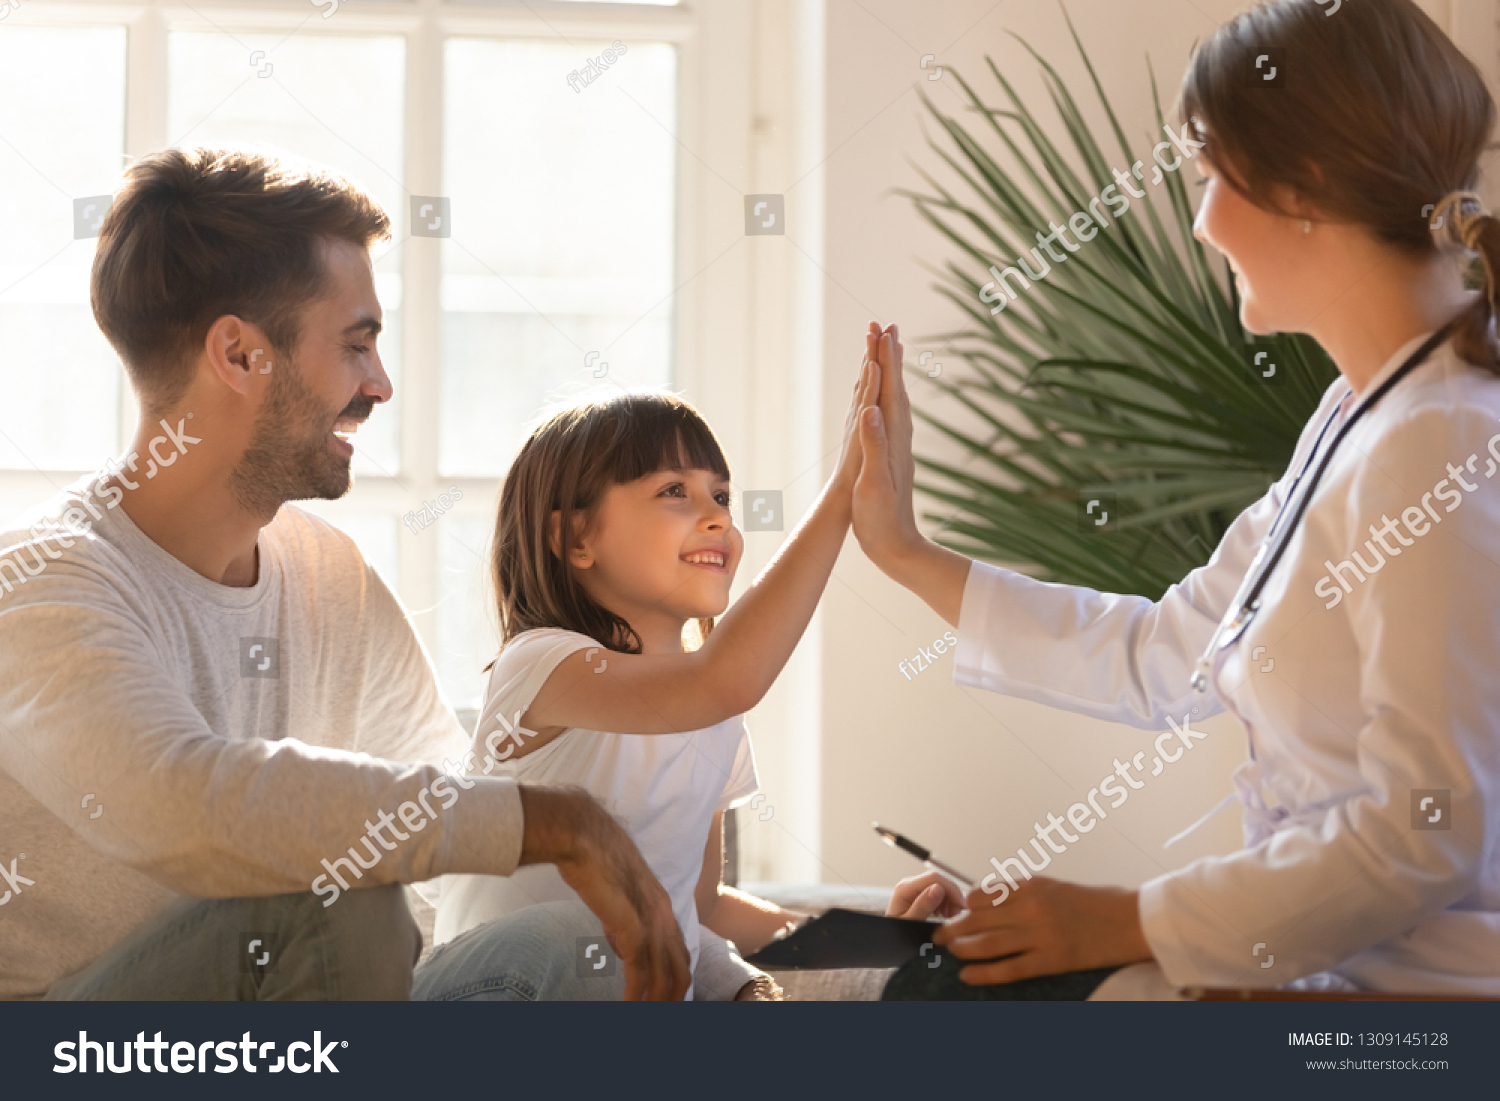 Healthy happy child girl giving high five to female caring doctor celebrate good checkup medical result recovery visiting pediatrist in hospital, pediatrician with kid patient good relationship trust #1309145128